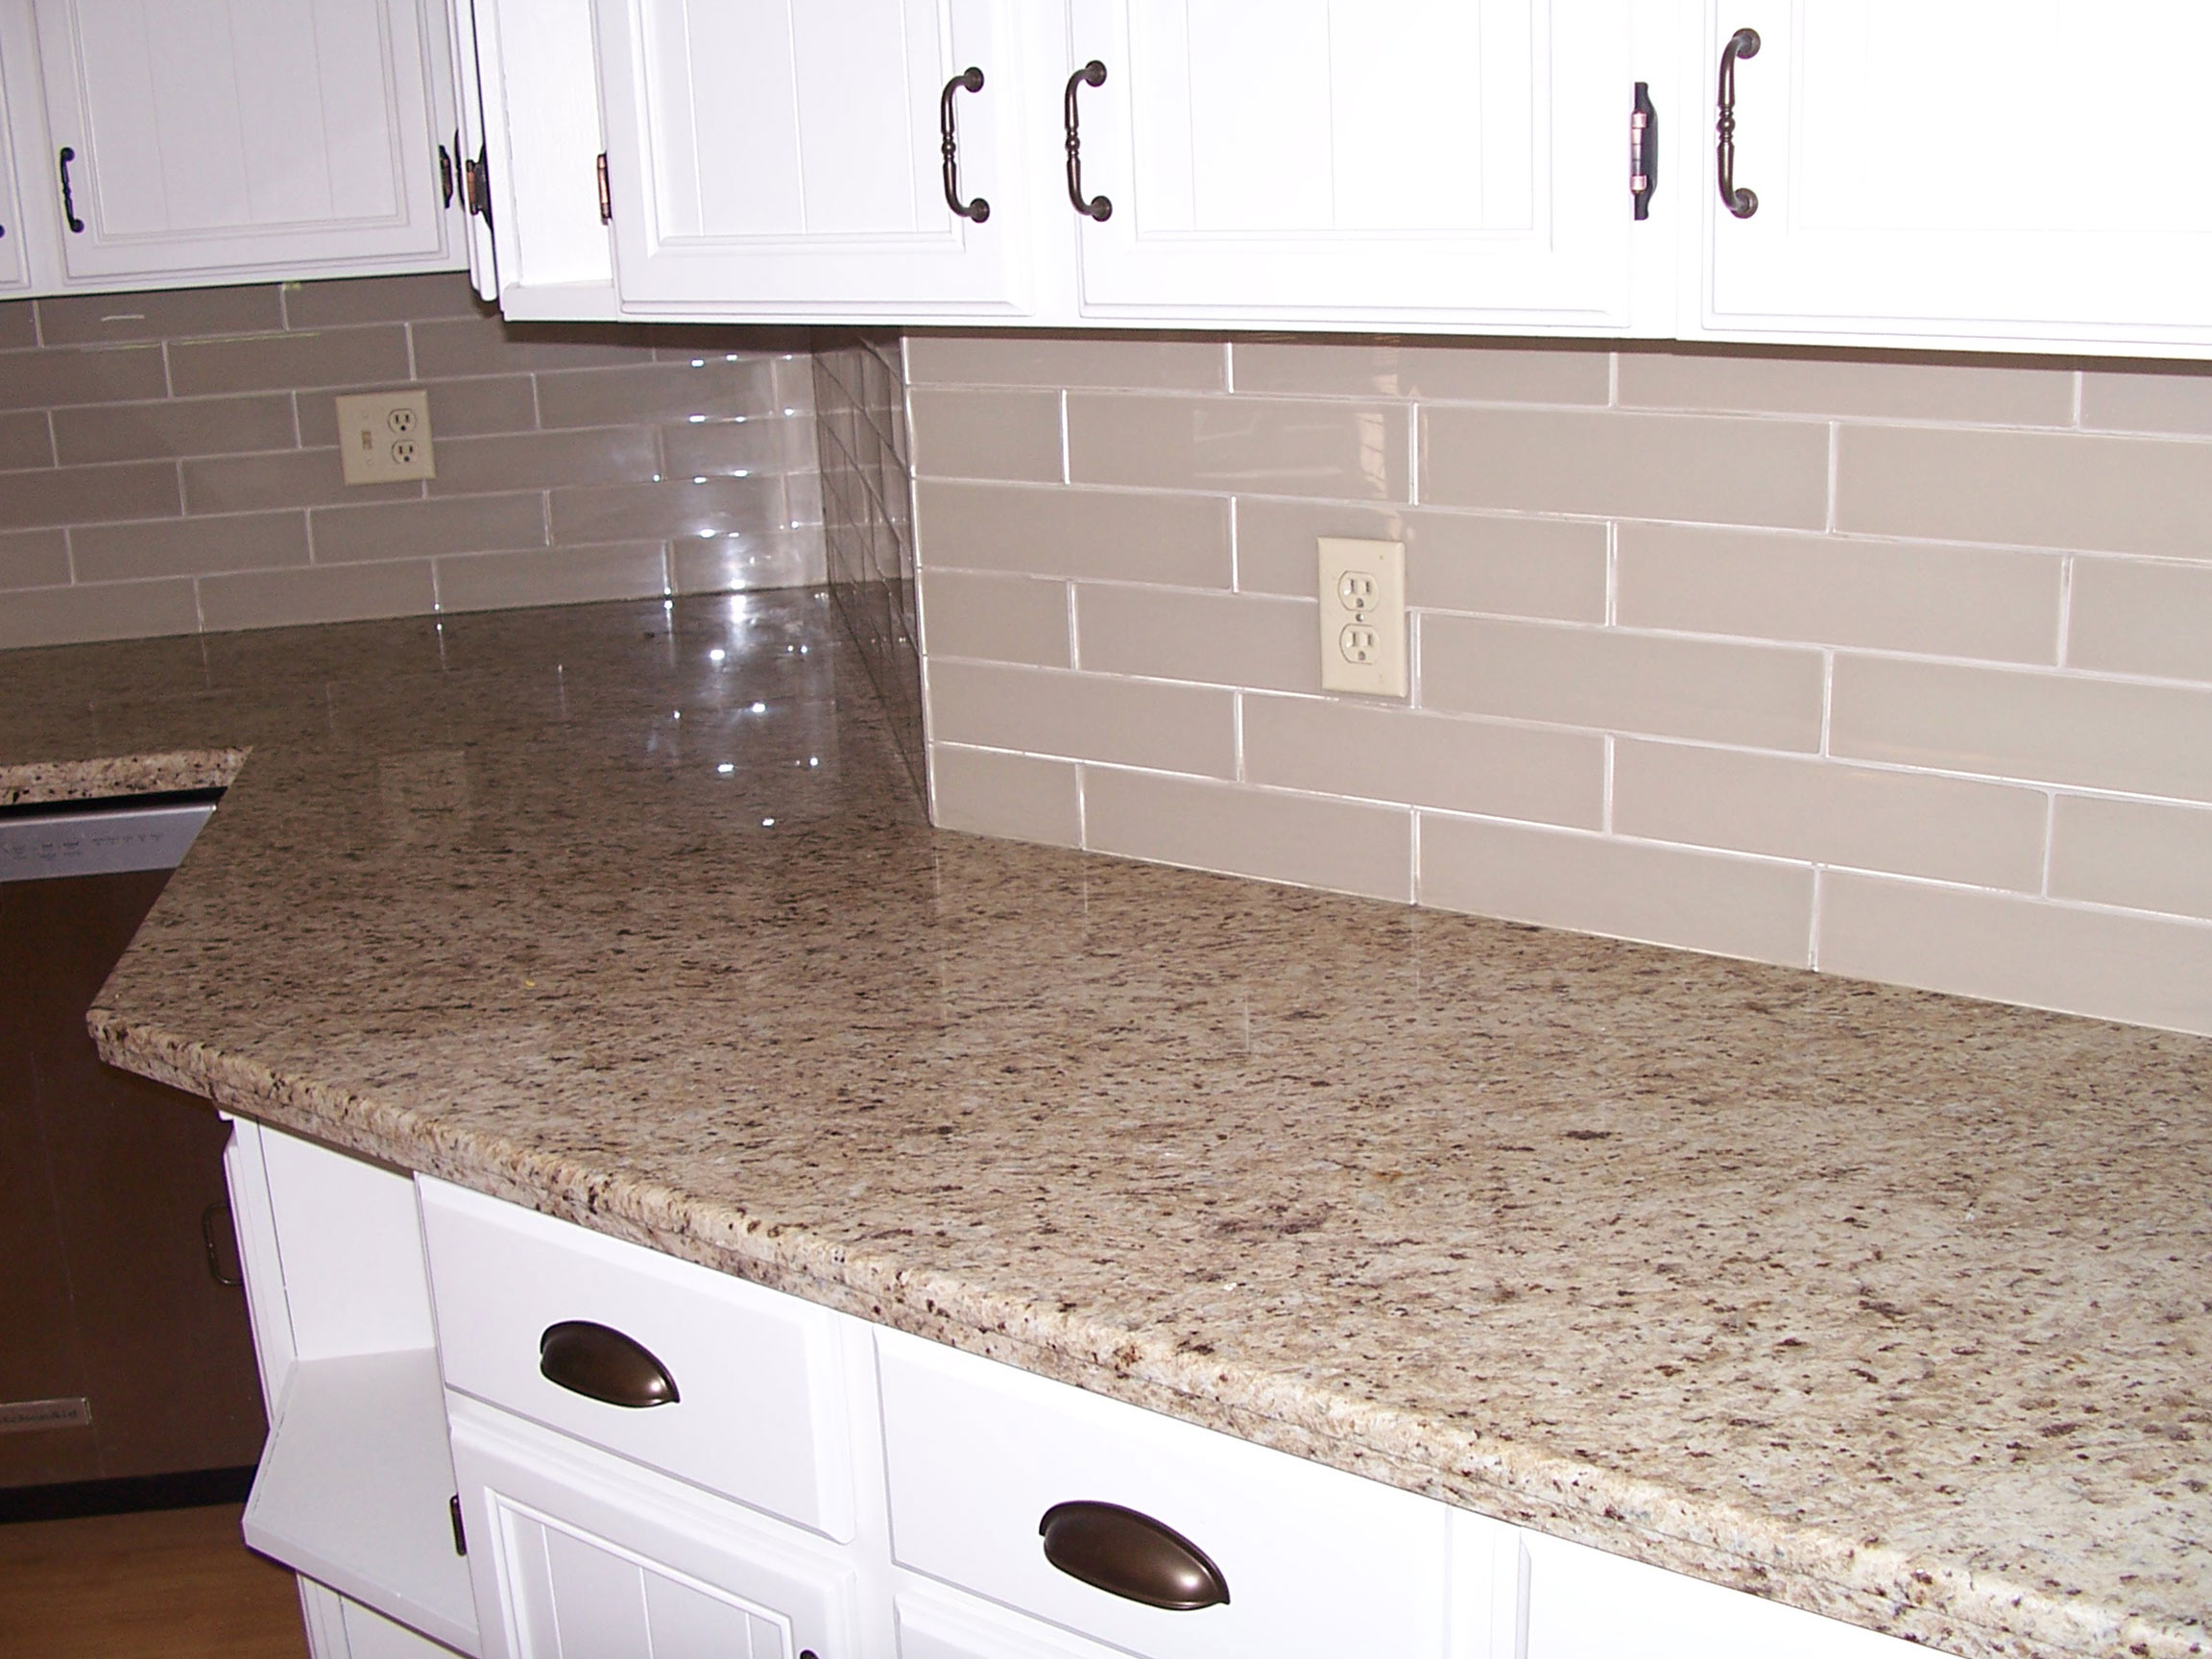 Recoulour Counter Backsplash After